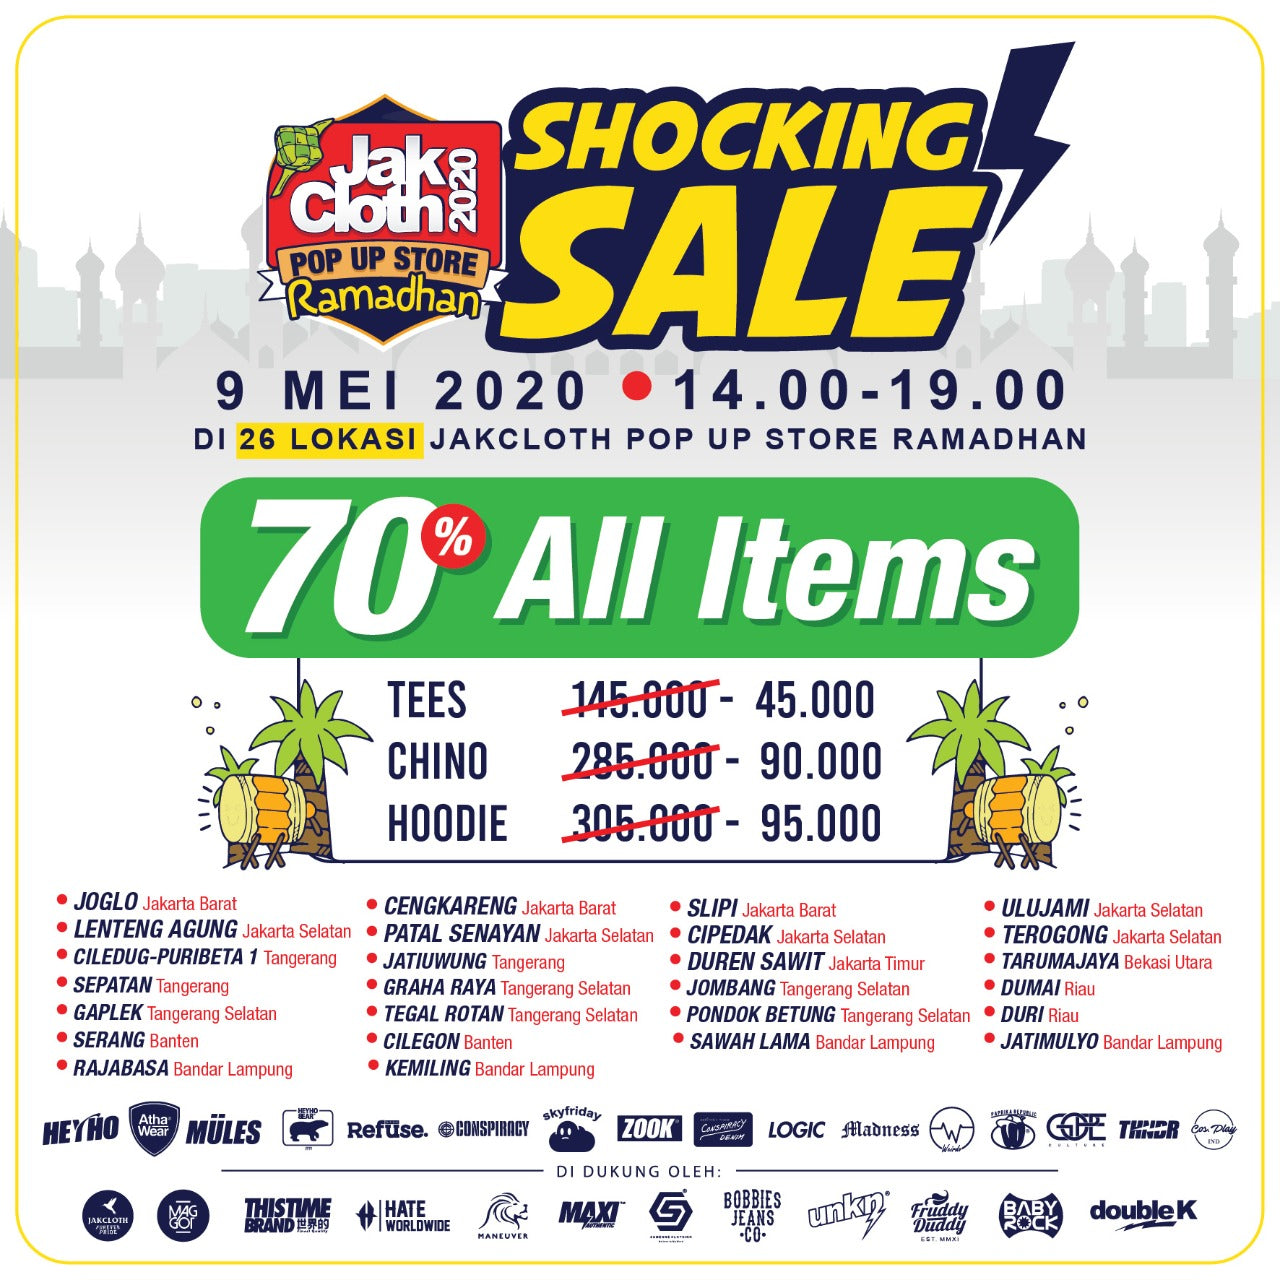 Jakcloth Pop Up Store Shocking Sale Up To 70%!!!